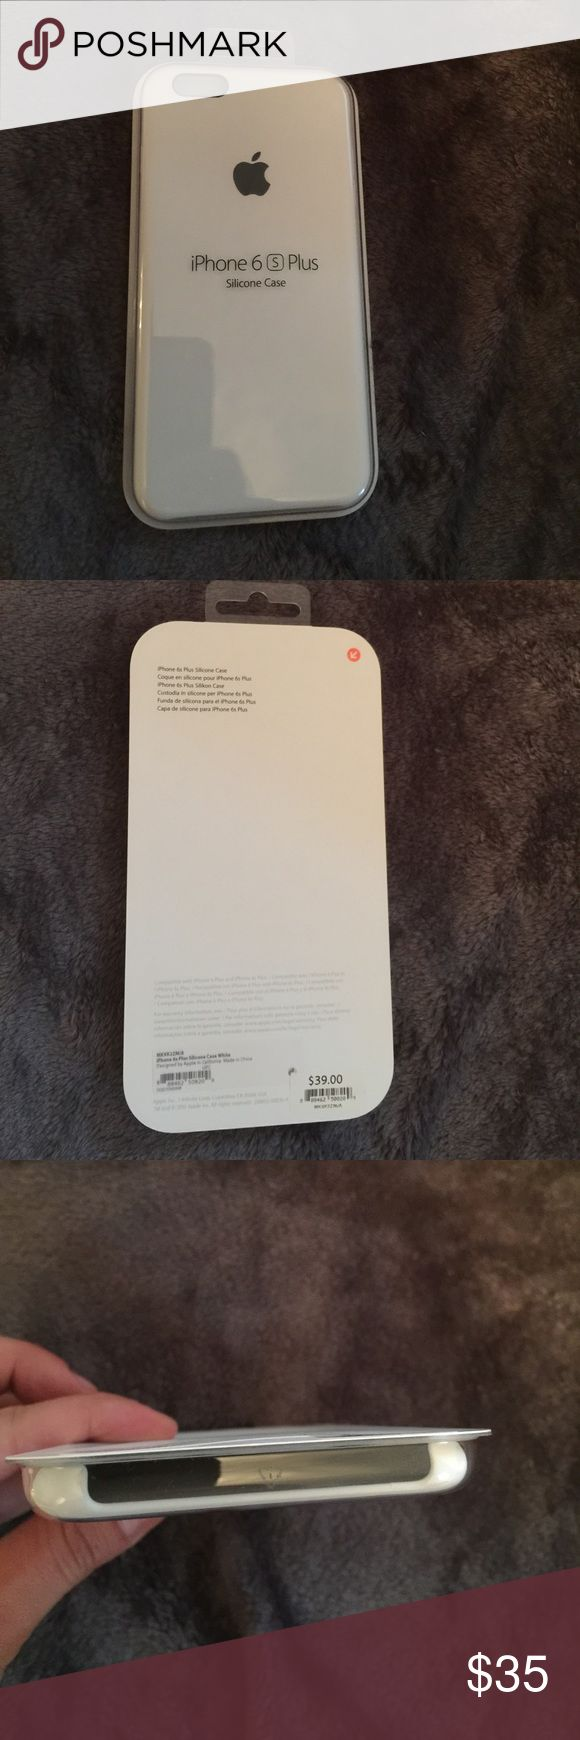 Apple iPhone 6 s plus silicone case. Brand new in box apple case. Ended up getting different phone and have no use for it. Bought it at the Apple Store. Apple Accessories Phone Cases